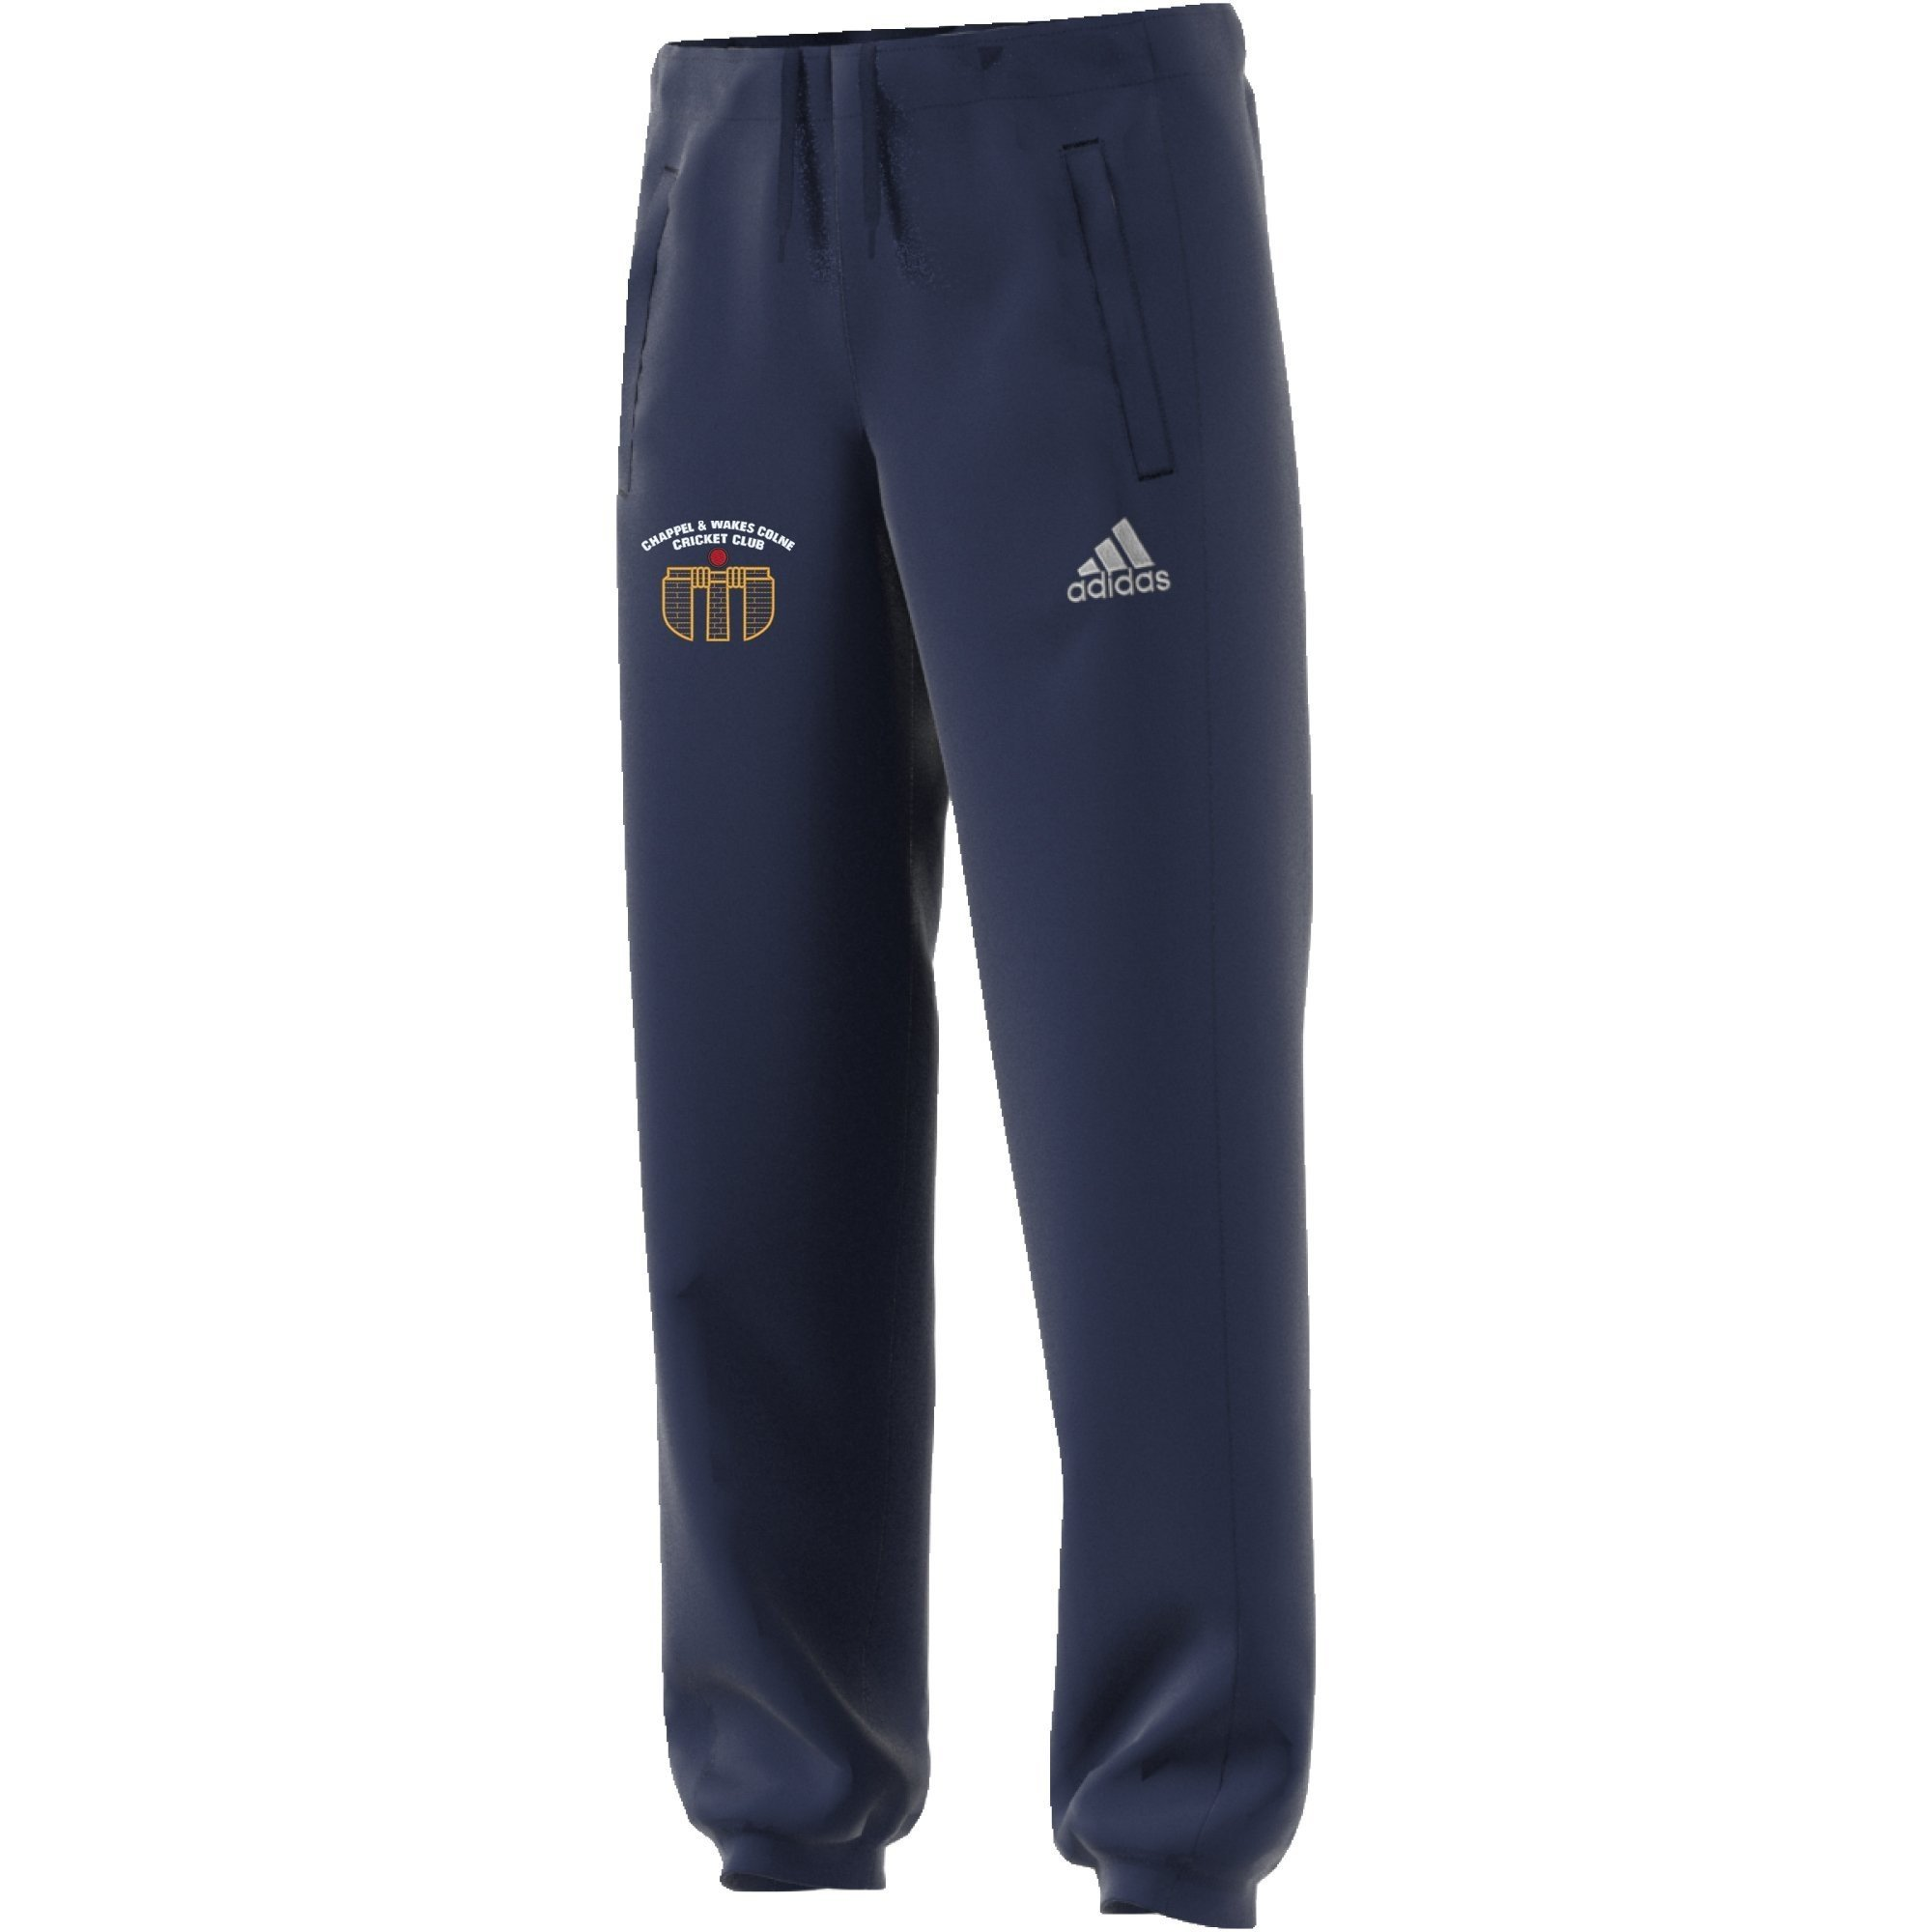 Chappel & Wakes Colne CC Adidas Navy Sweat Pants